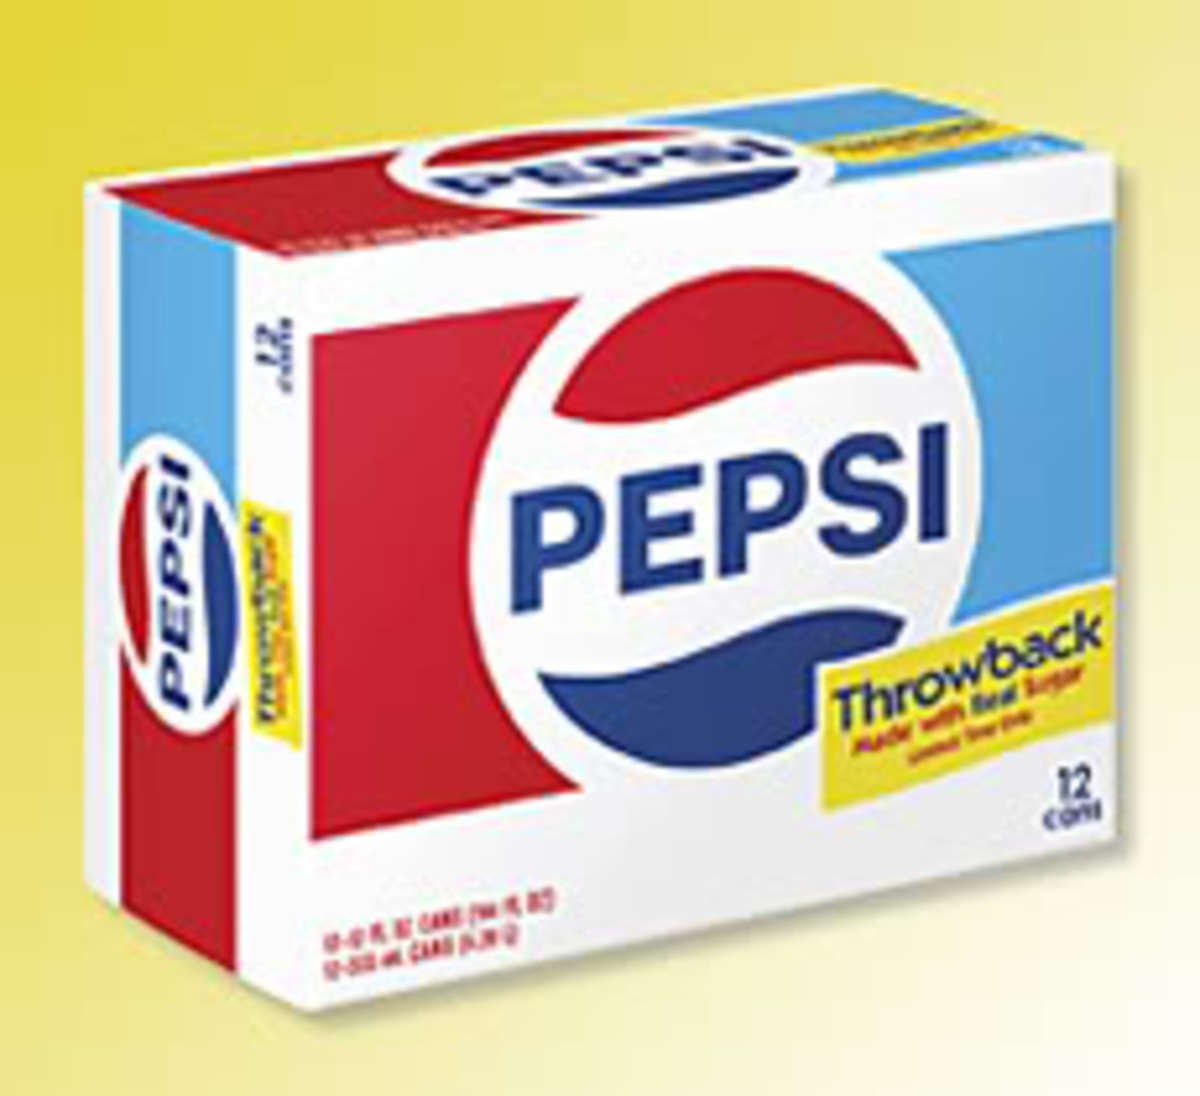 pepsithrowback1